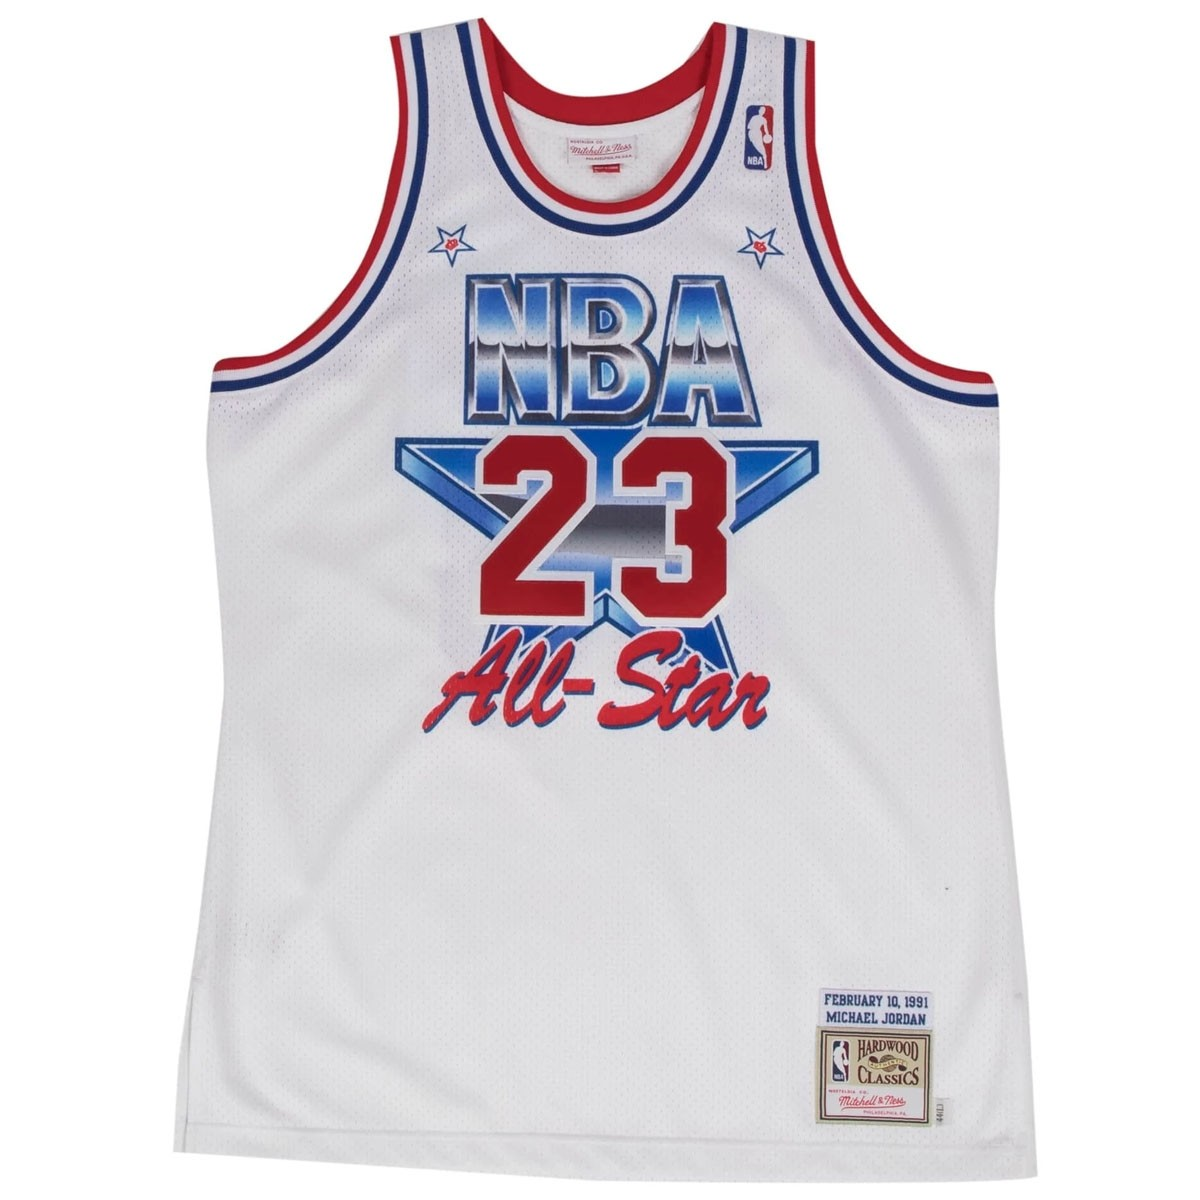 Mitchell & Ness Jordan Authentic Jersey 'All-Star 91'